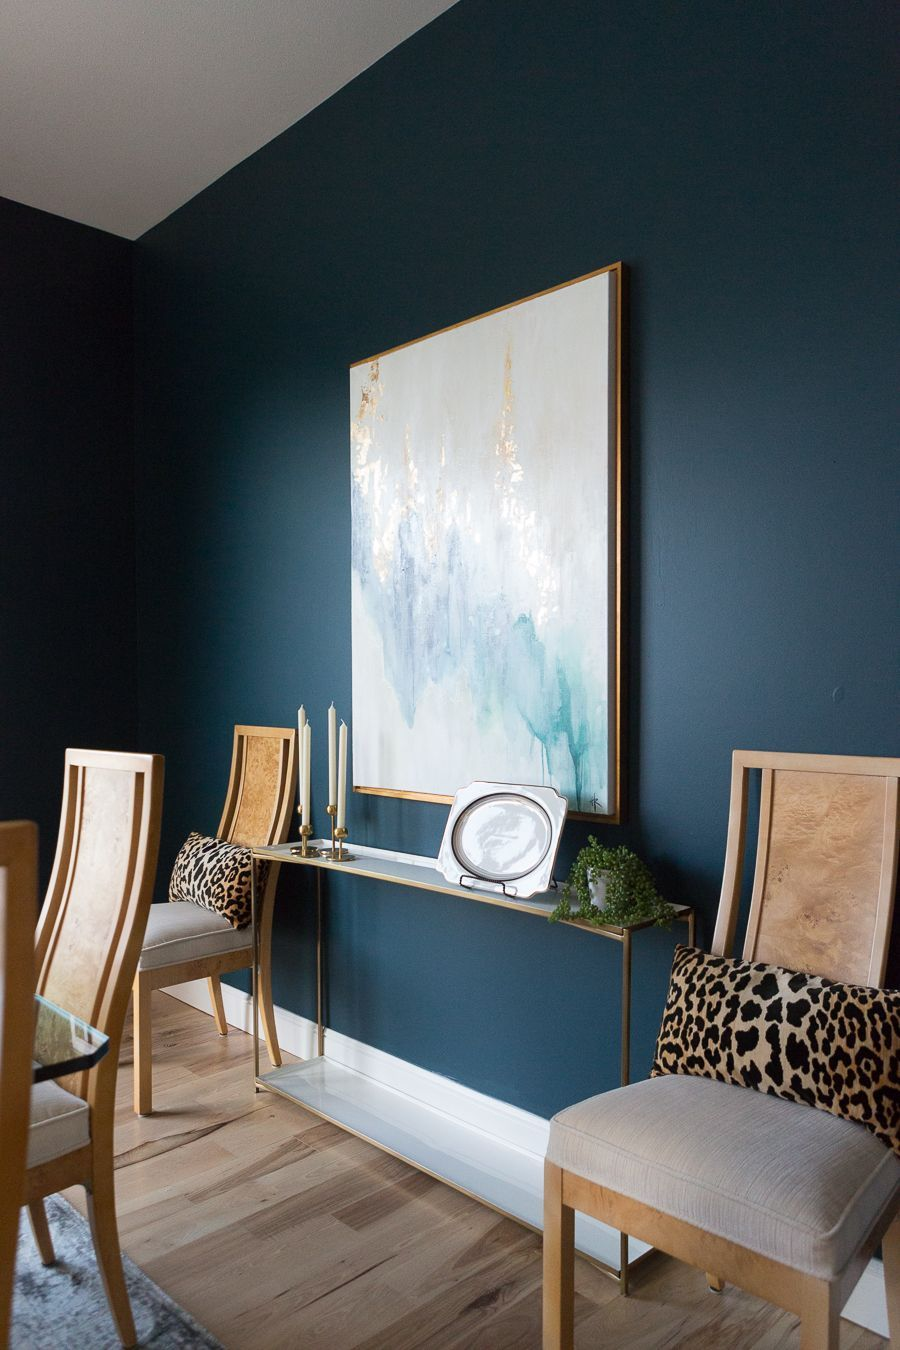 Top 3 Blue Green Paint Colors For Dark And Dramatic Walls Dine